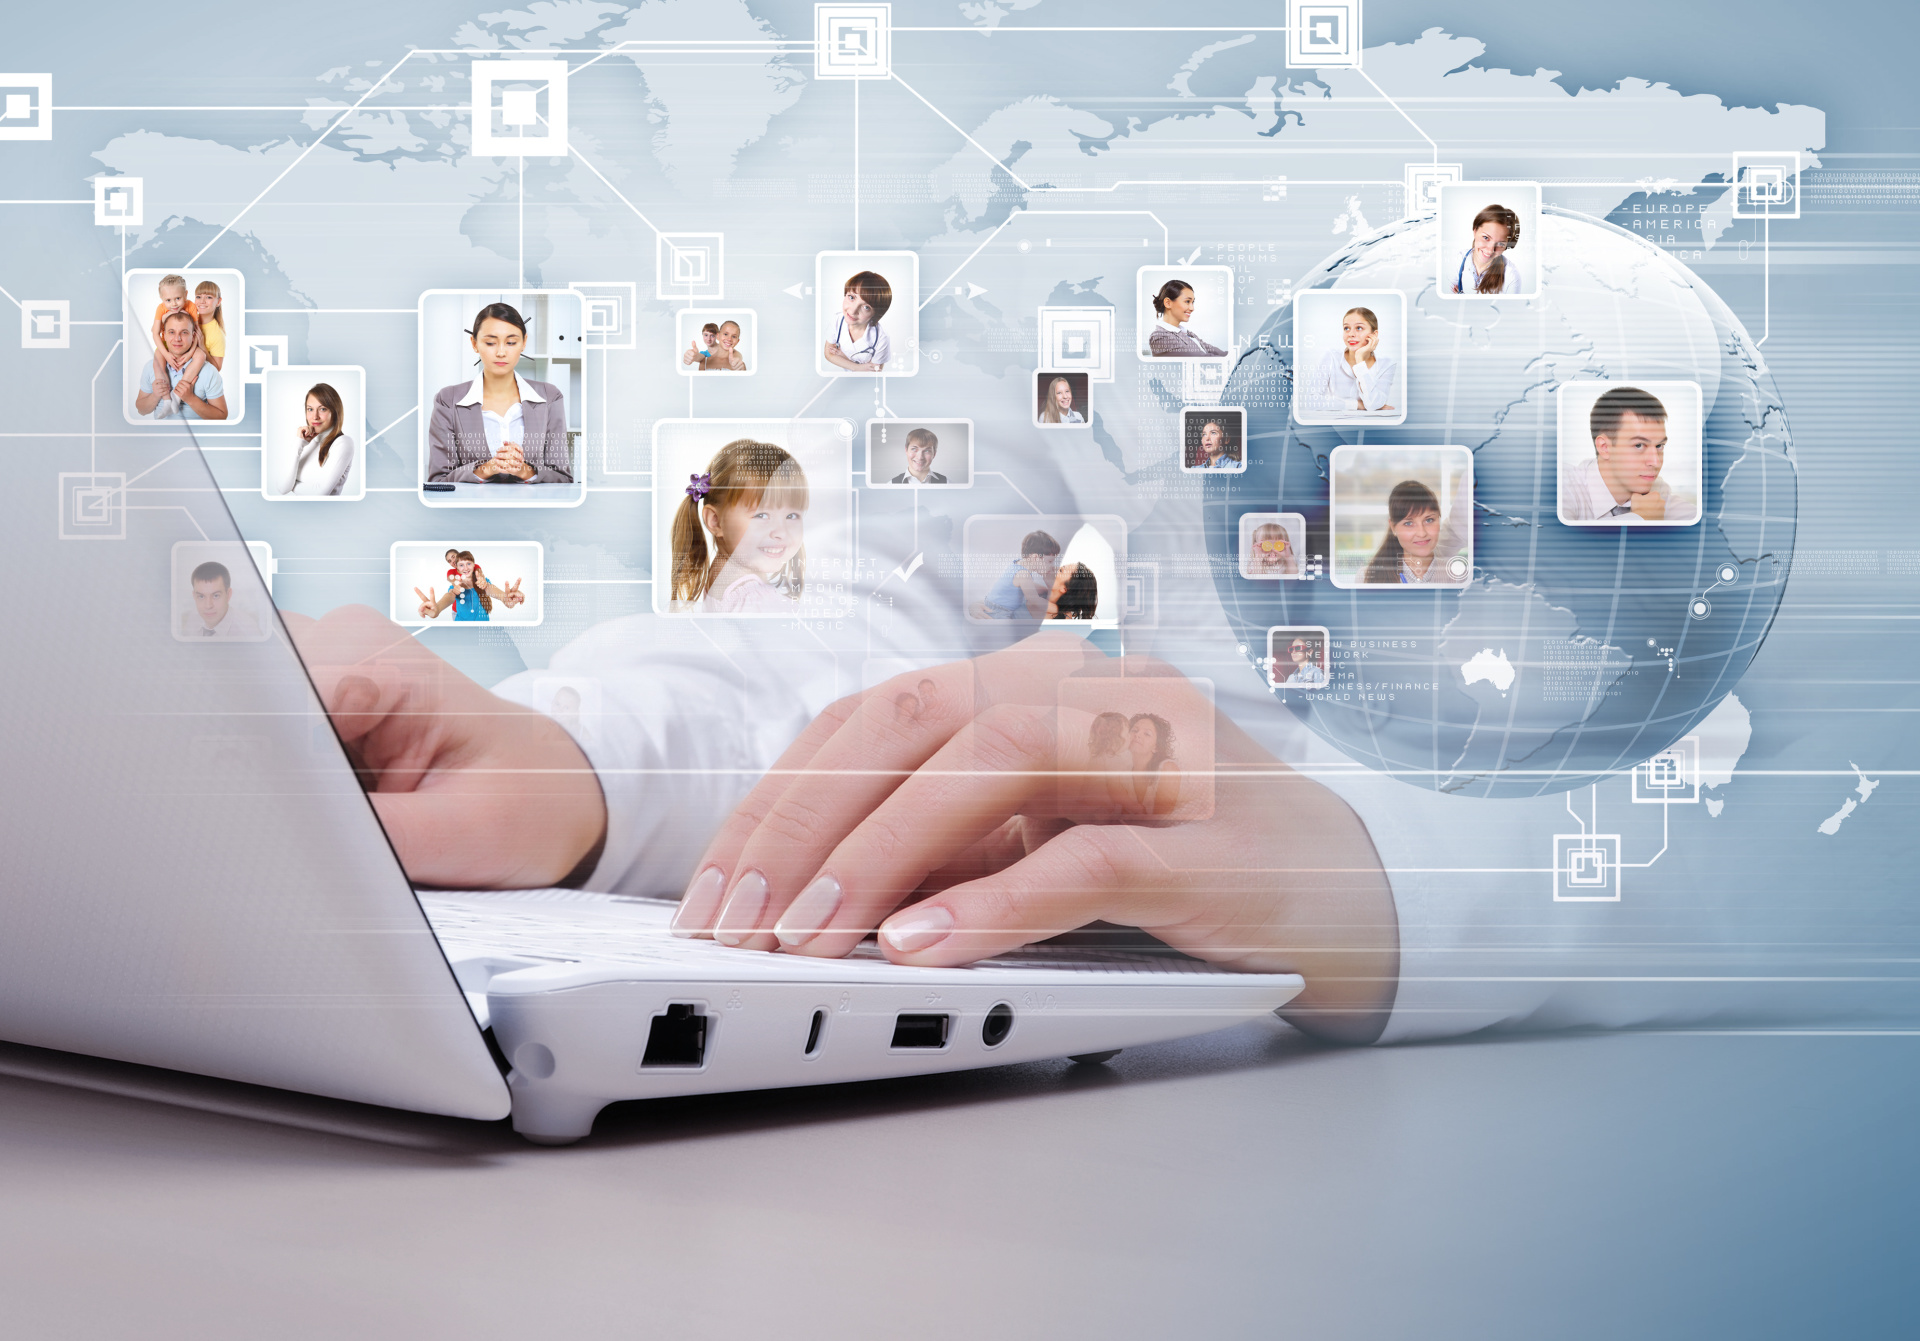 The importance of social networking for business